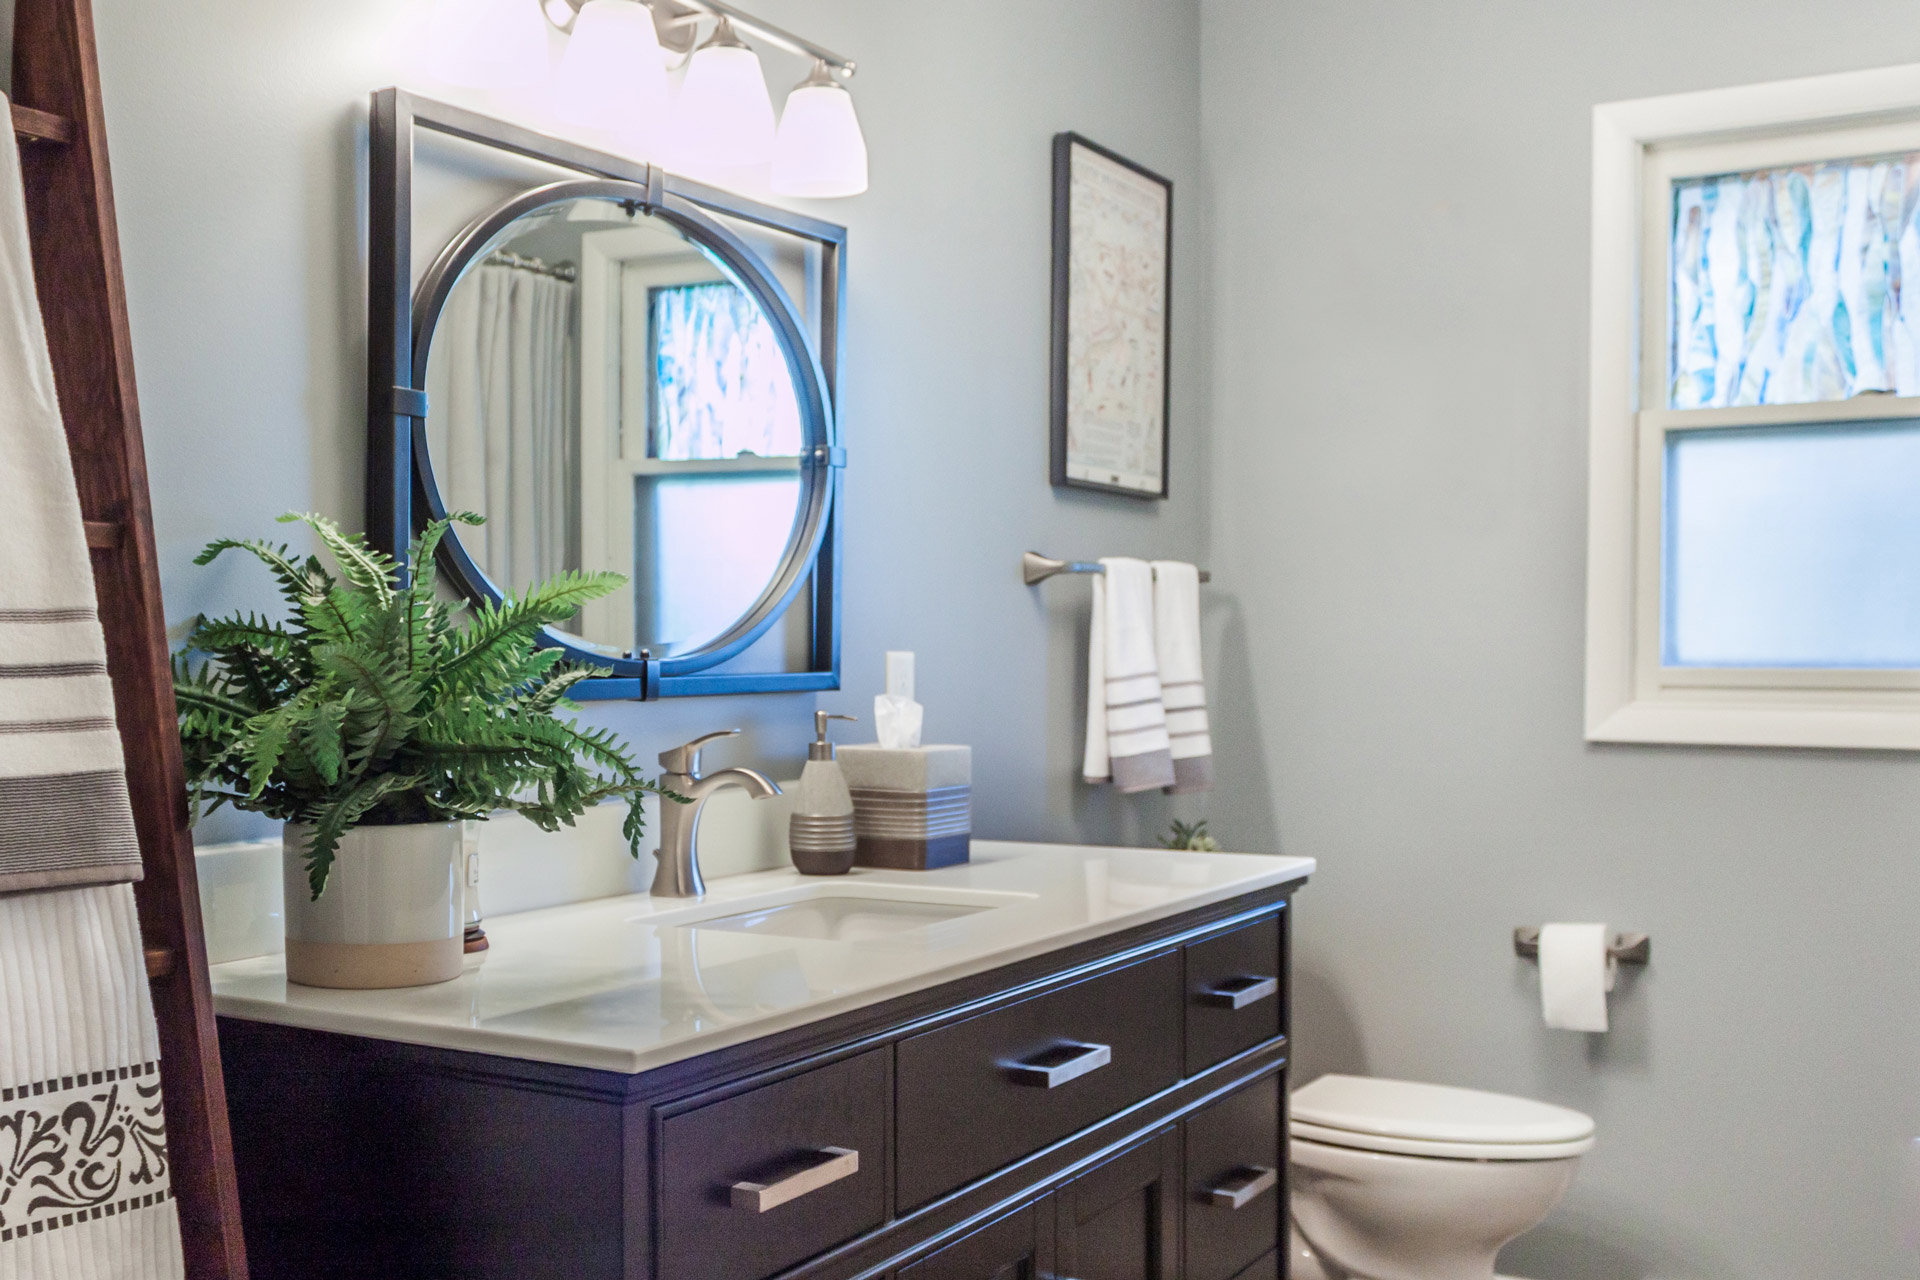 Small Bathroom Remodeling: Storage and Space Saving Design ...